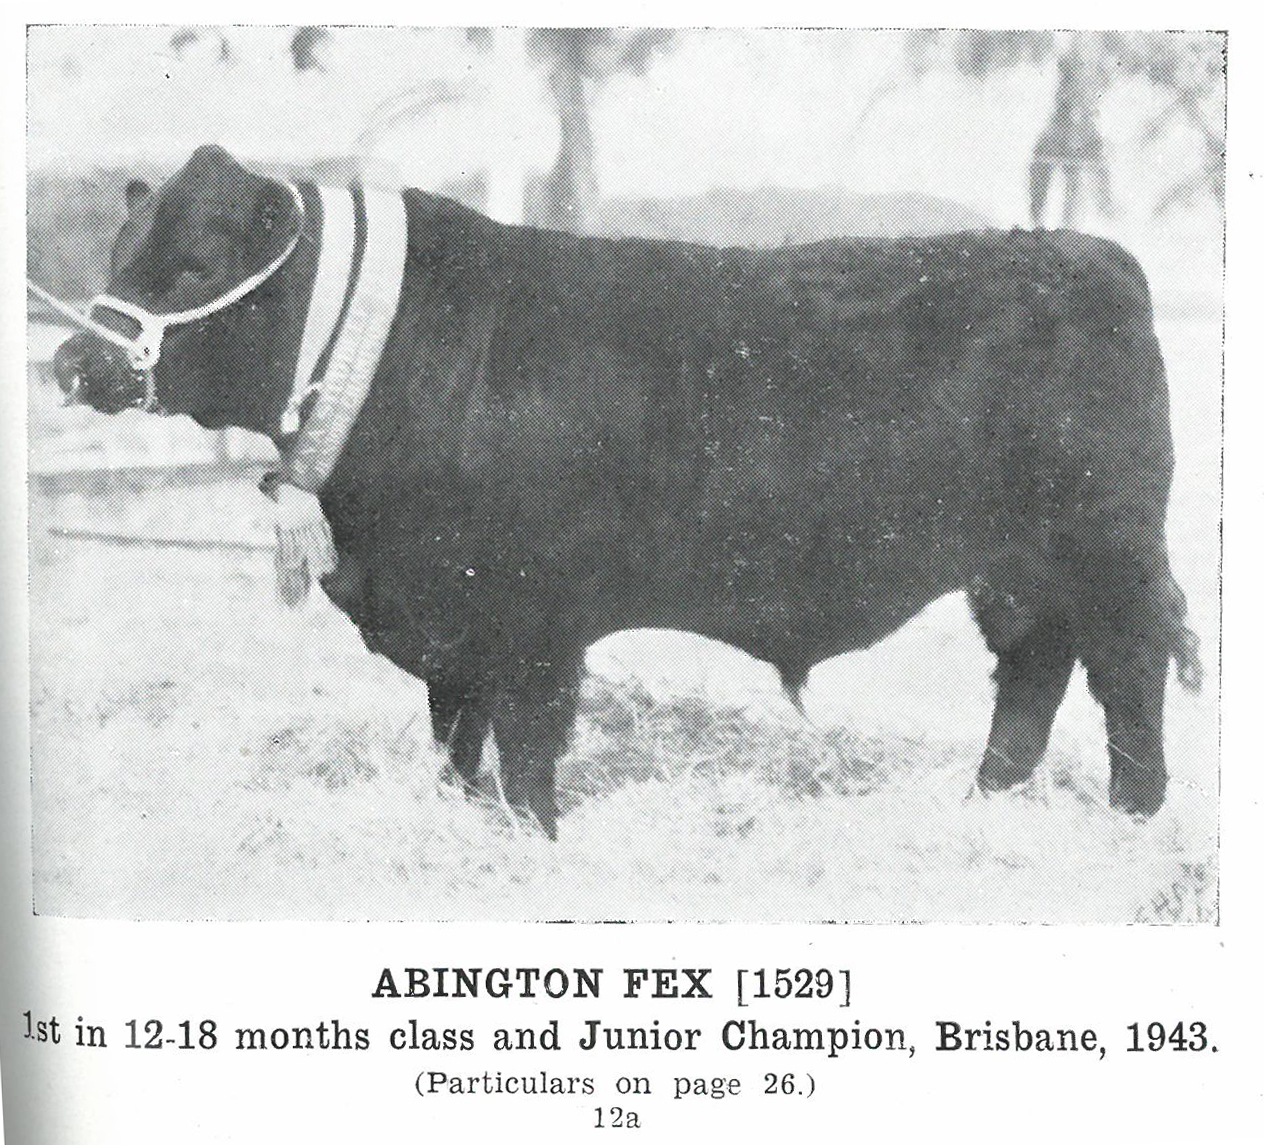 Abington Fex